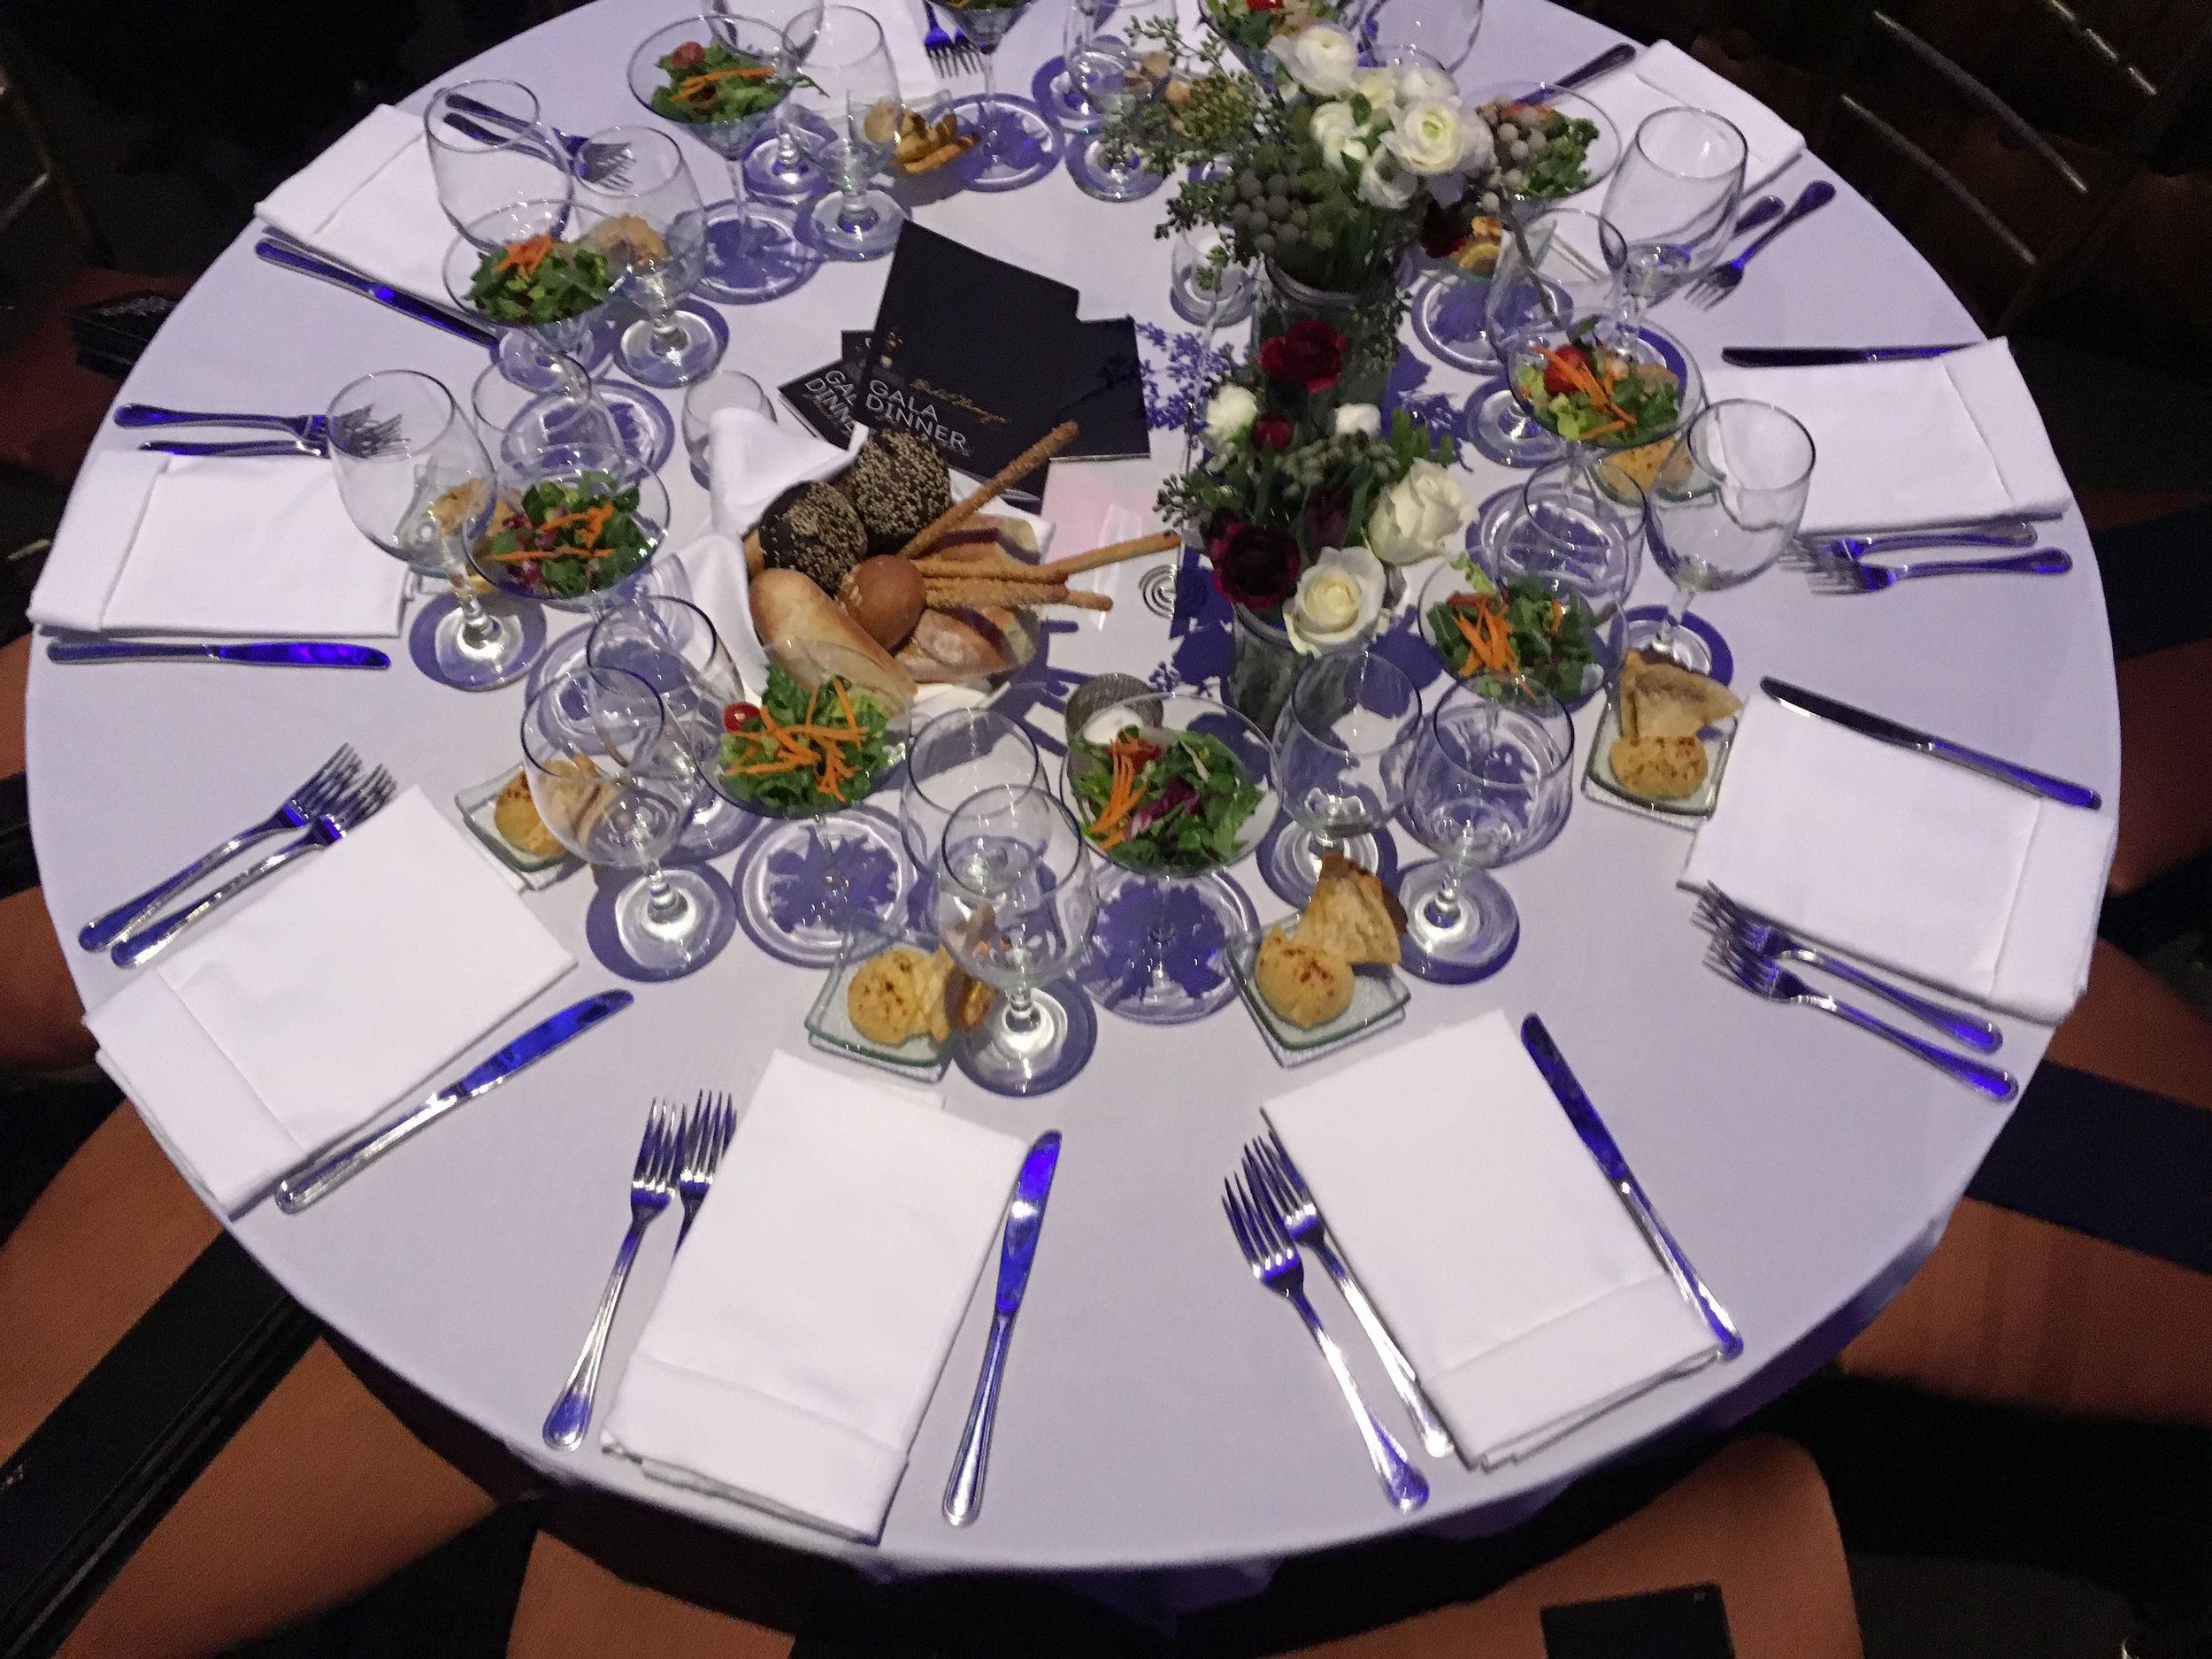 Exclusive Kosher Caterer   Beth El Synagogue Center, New Rochelle, NY   RECOMMENDED THROUGHOUT THE TRI-STATE AREA    Menus >   Contact >